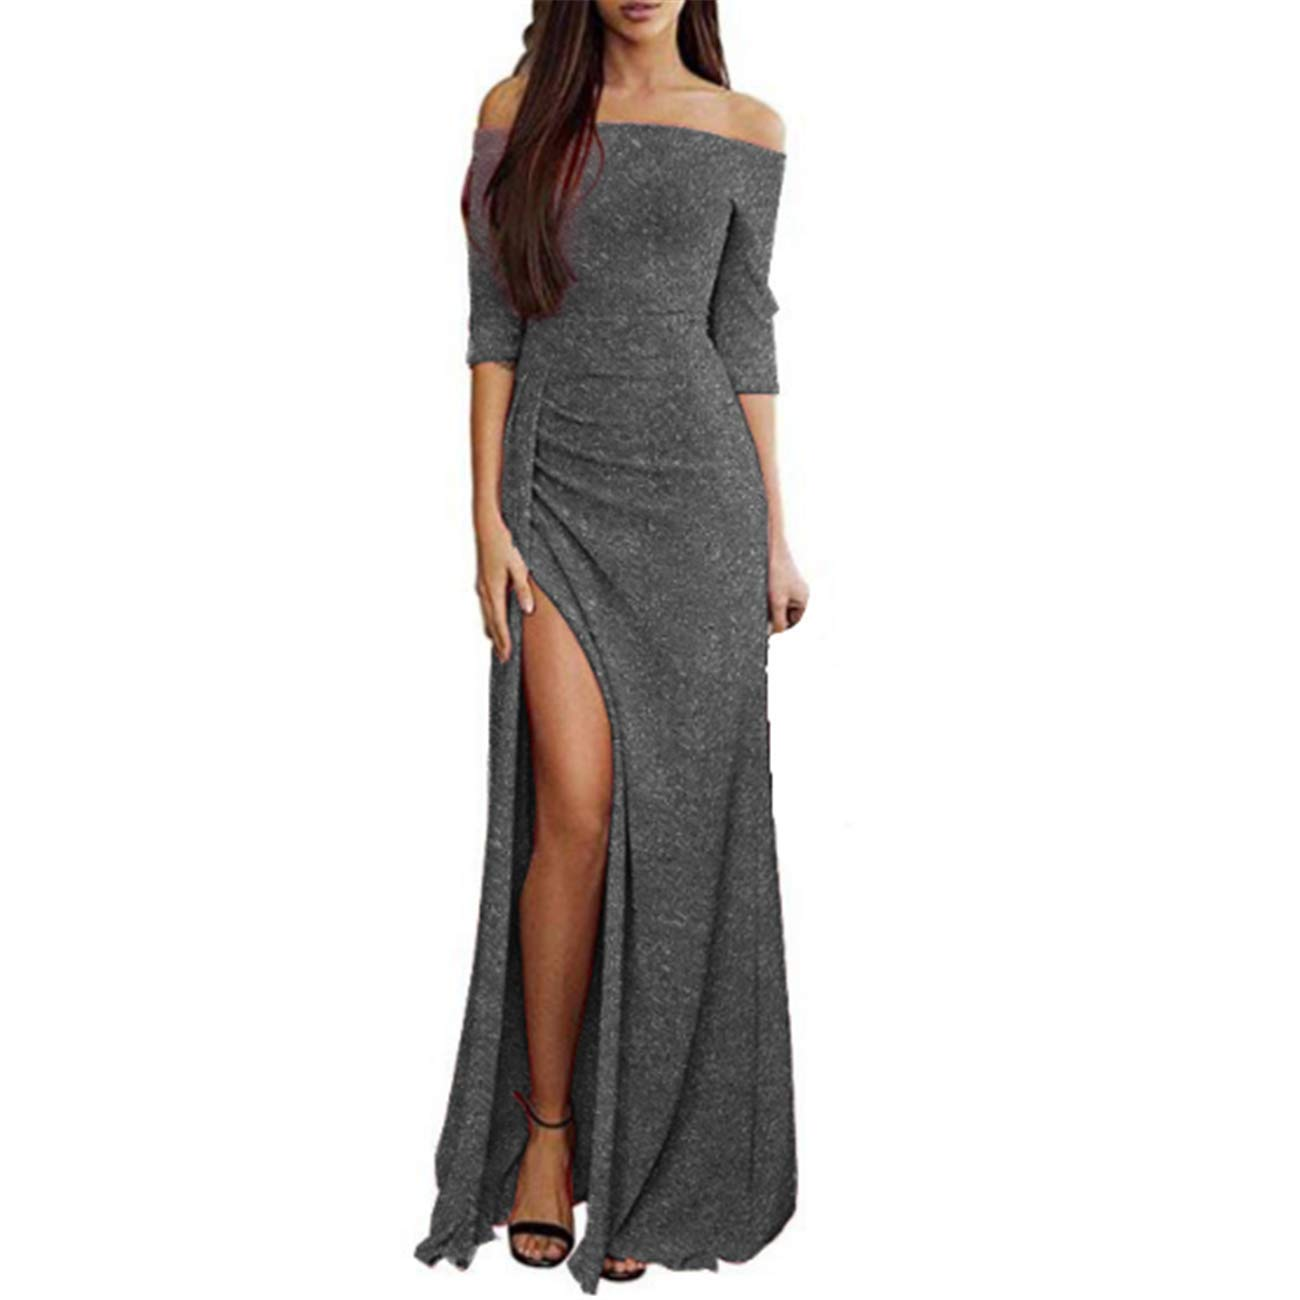 Buy Seraphy Pretty Woman S Evening Dress Sparkling Gown Long Dinner Party Dress Cocktail Dress Elegant Formal Banquet Ceremony Dress Bridesmaid Dress Multi Color Grey Xl At Amazon In